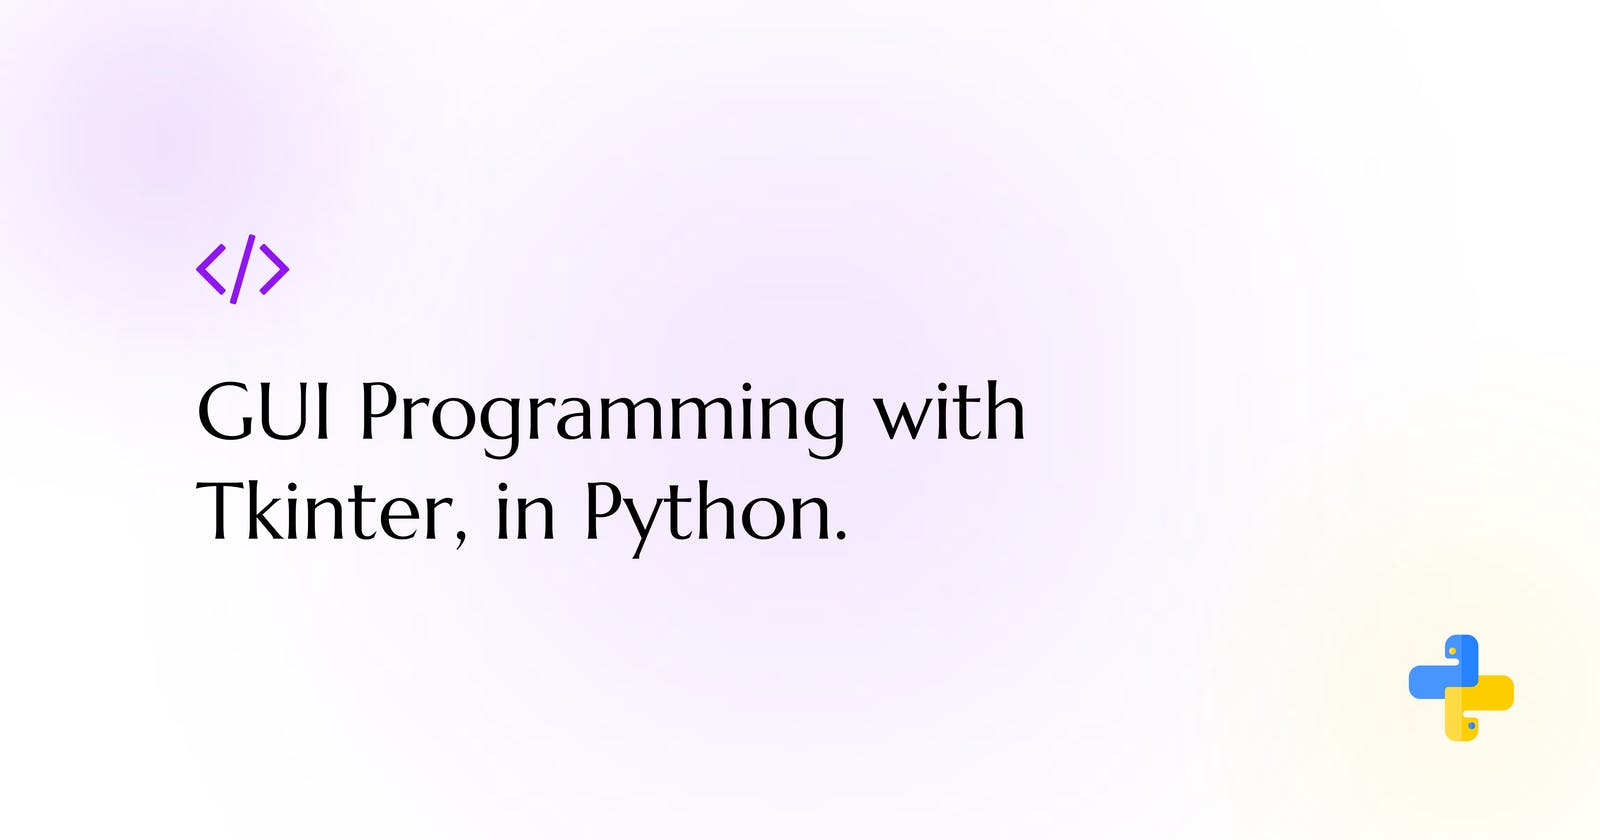 GUI Programming with Tkinter in Python